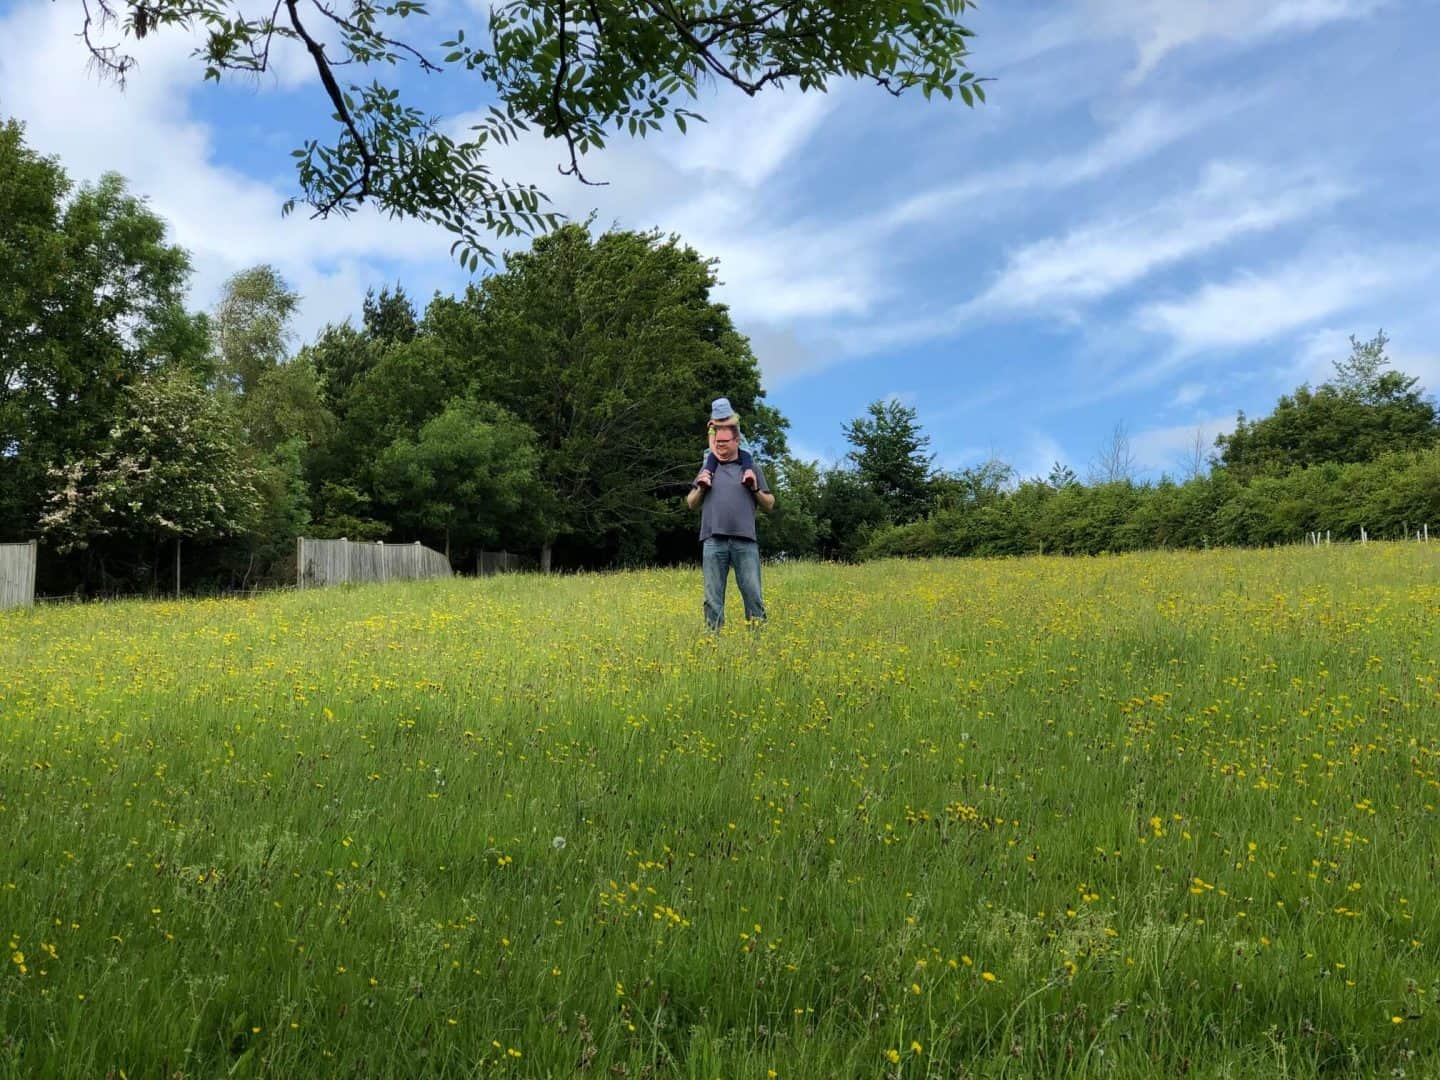 Mr-B-and-L-walking-through-a-field - What we enjoyed in May